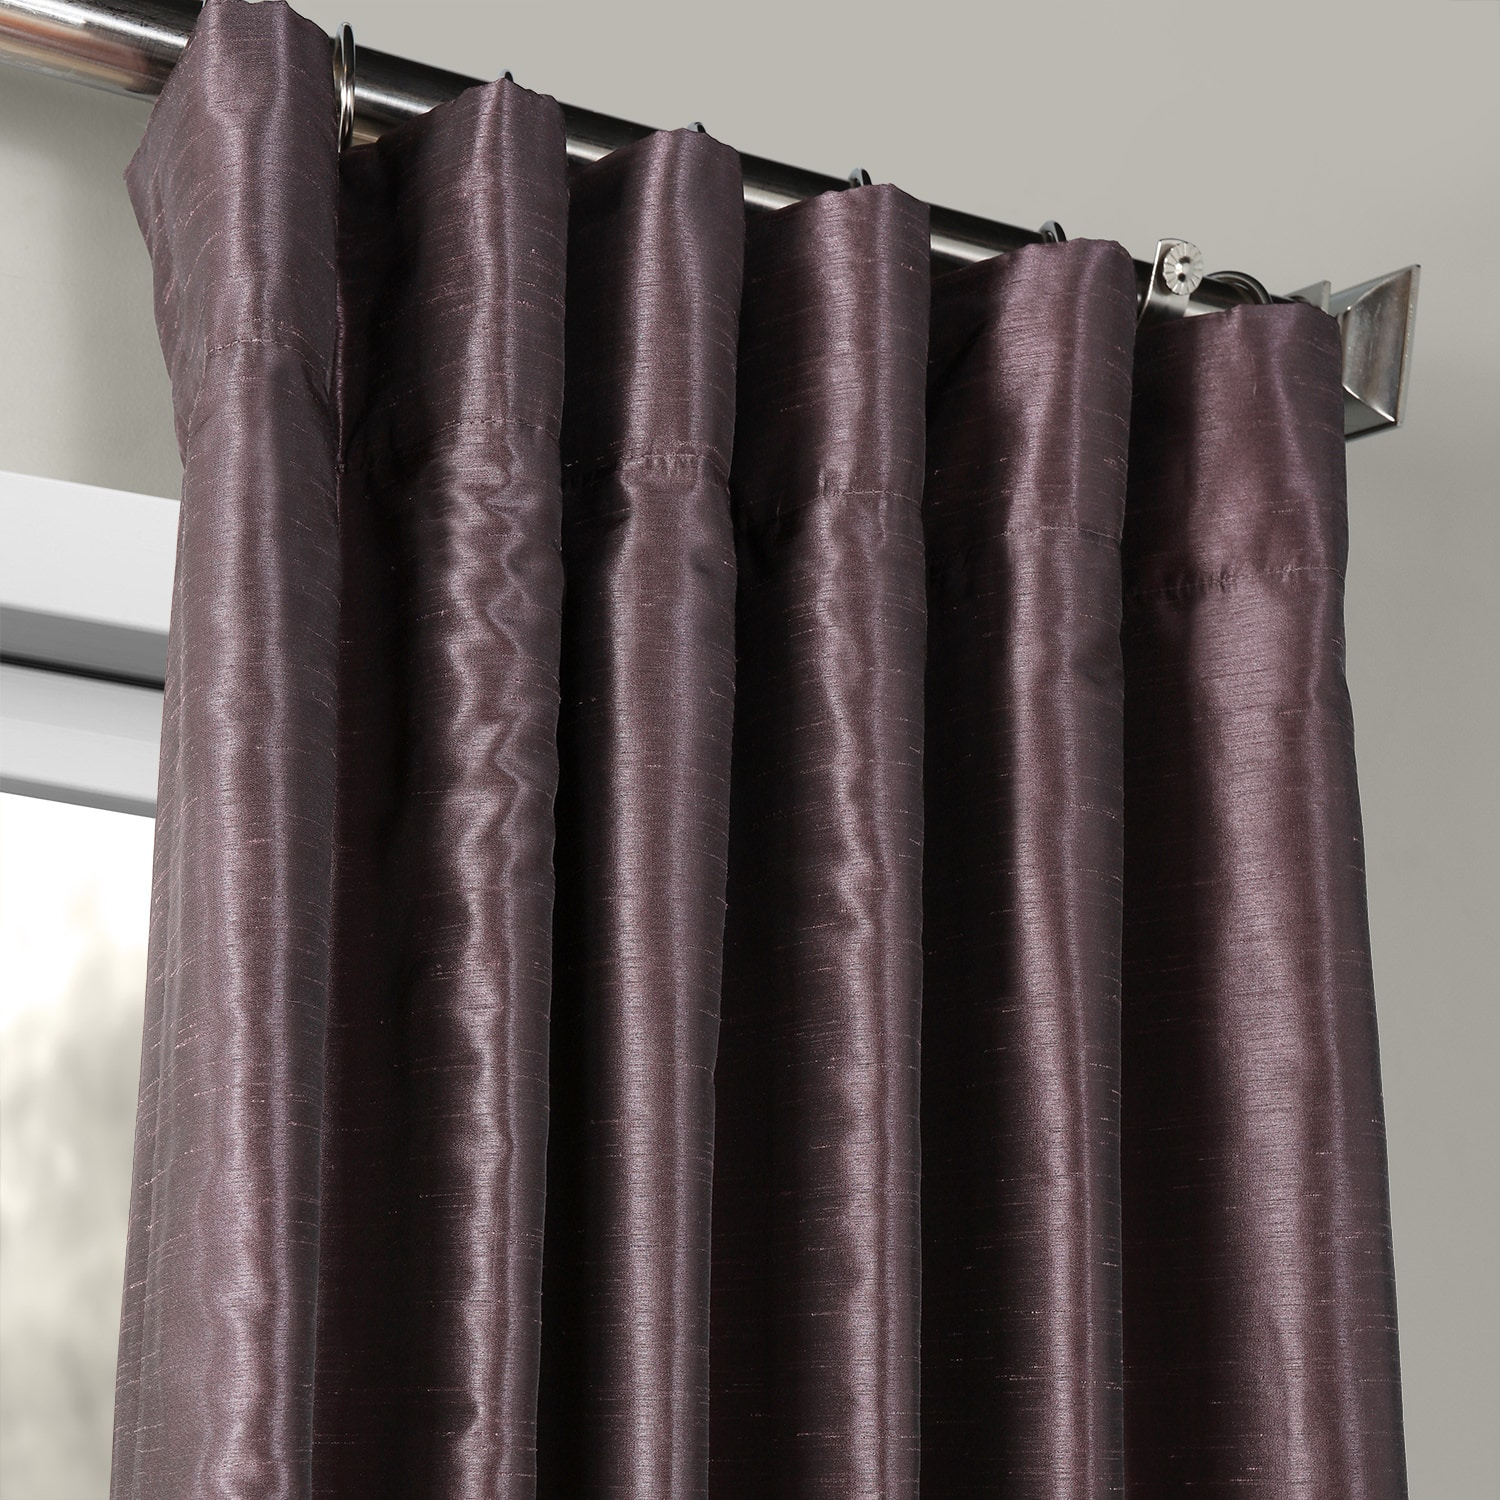 Dark Grape Vintage Textured Faux Dupioni Silk Curtain Intended For Ice White Vintage Faux Textured Silk Curtain Panels (View 2 of 20)